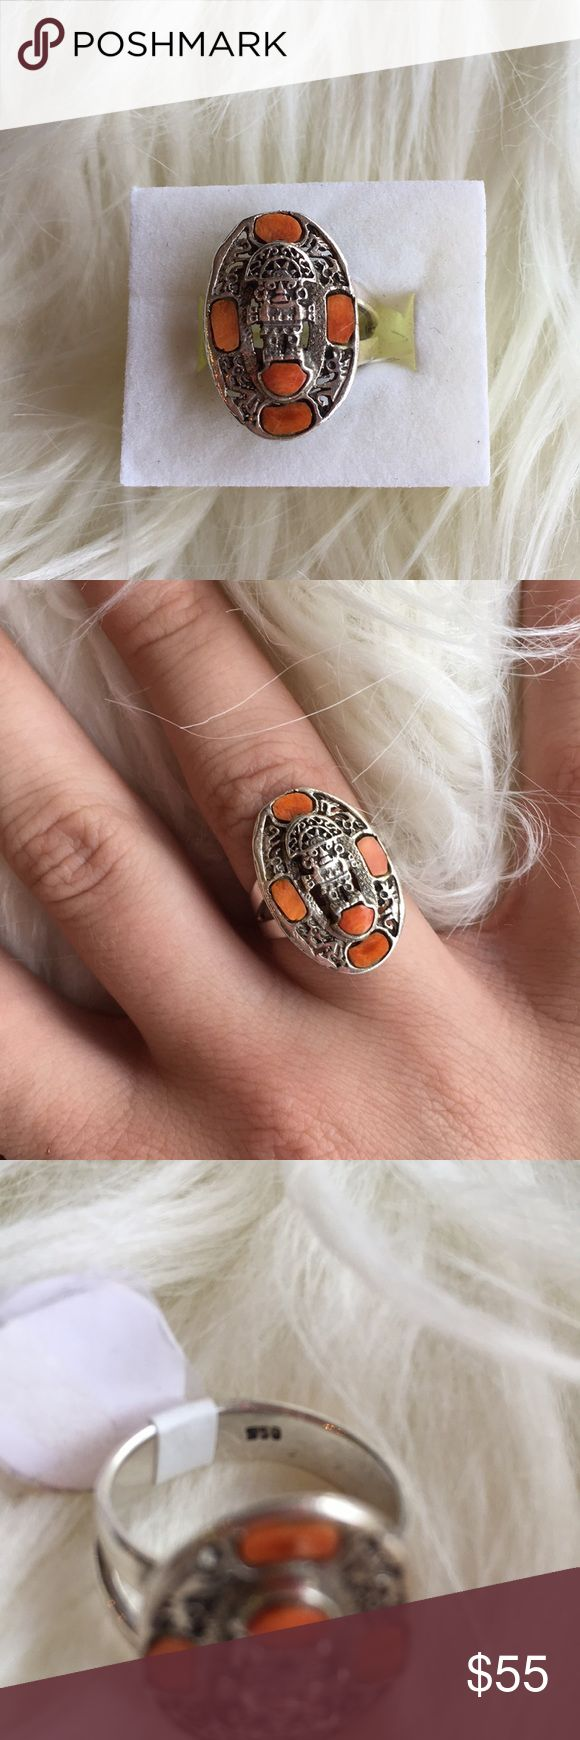 Aztec Ring Super cool Aztec ring with orange stones. Band marked 950. Item 3624-176 IS. Jewelry Rings